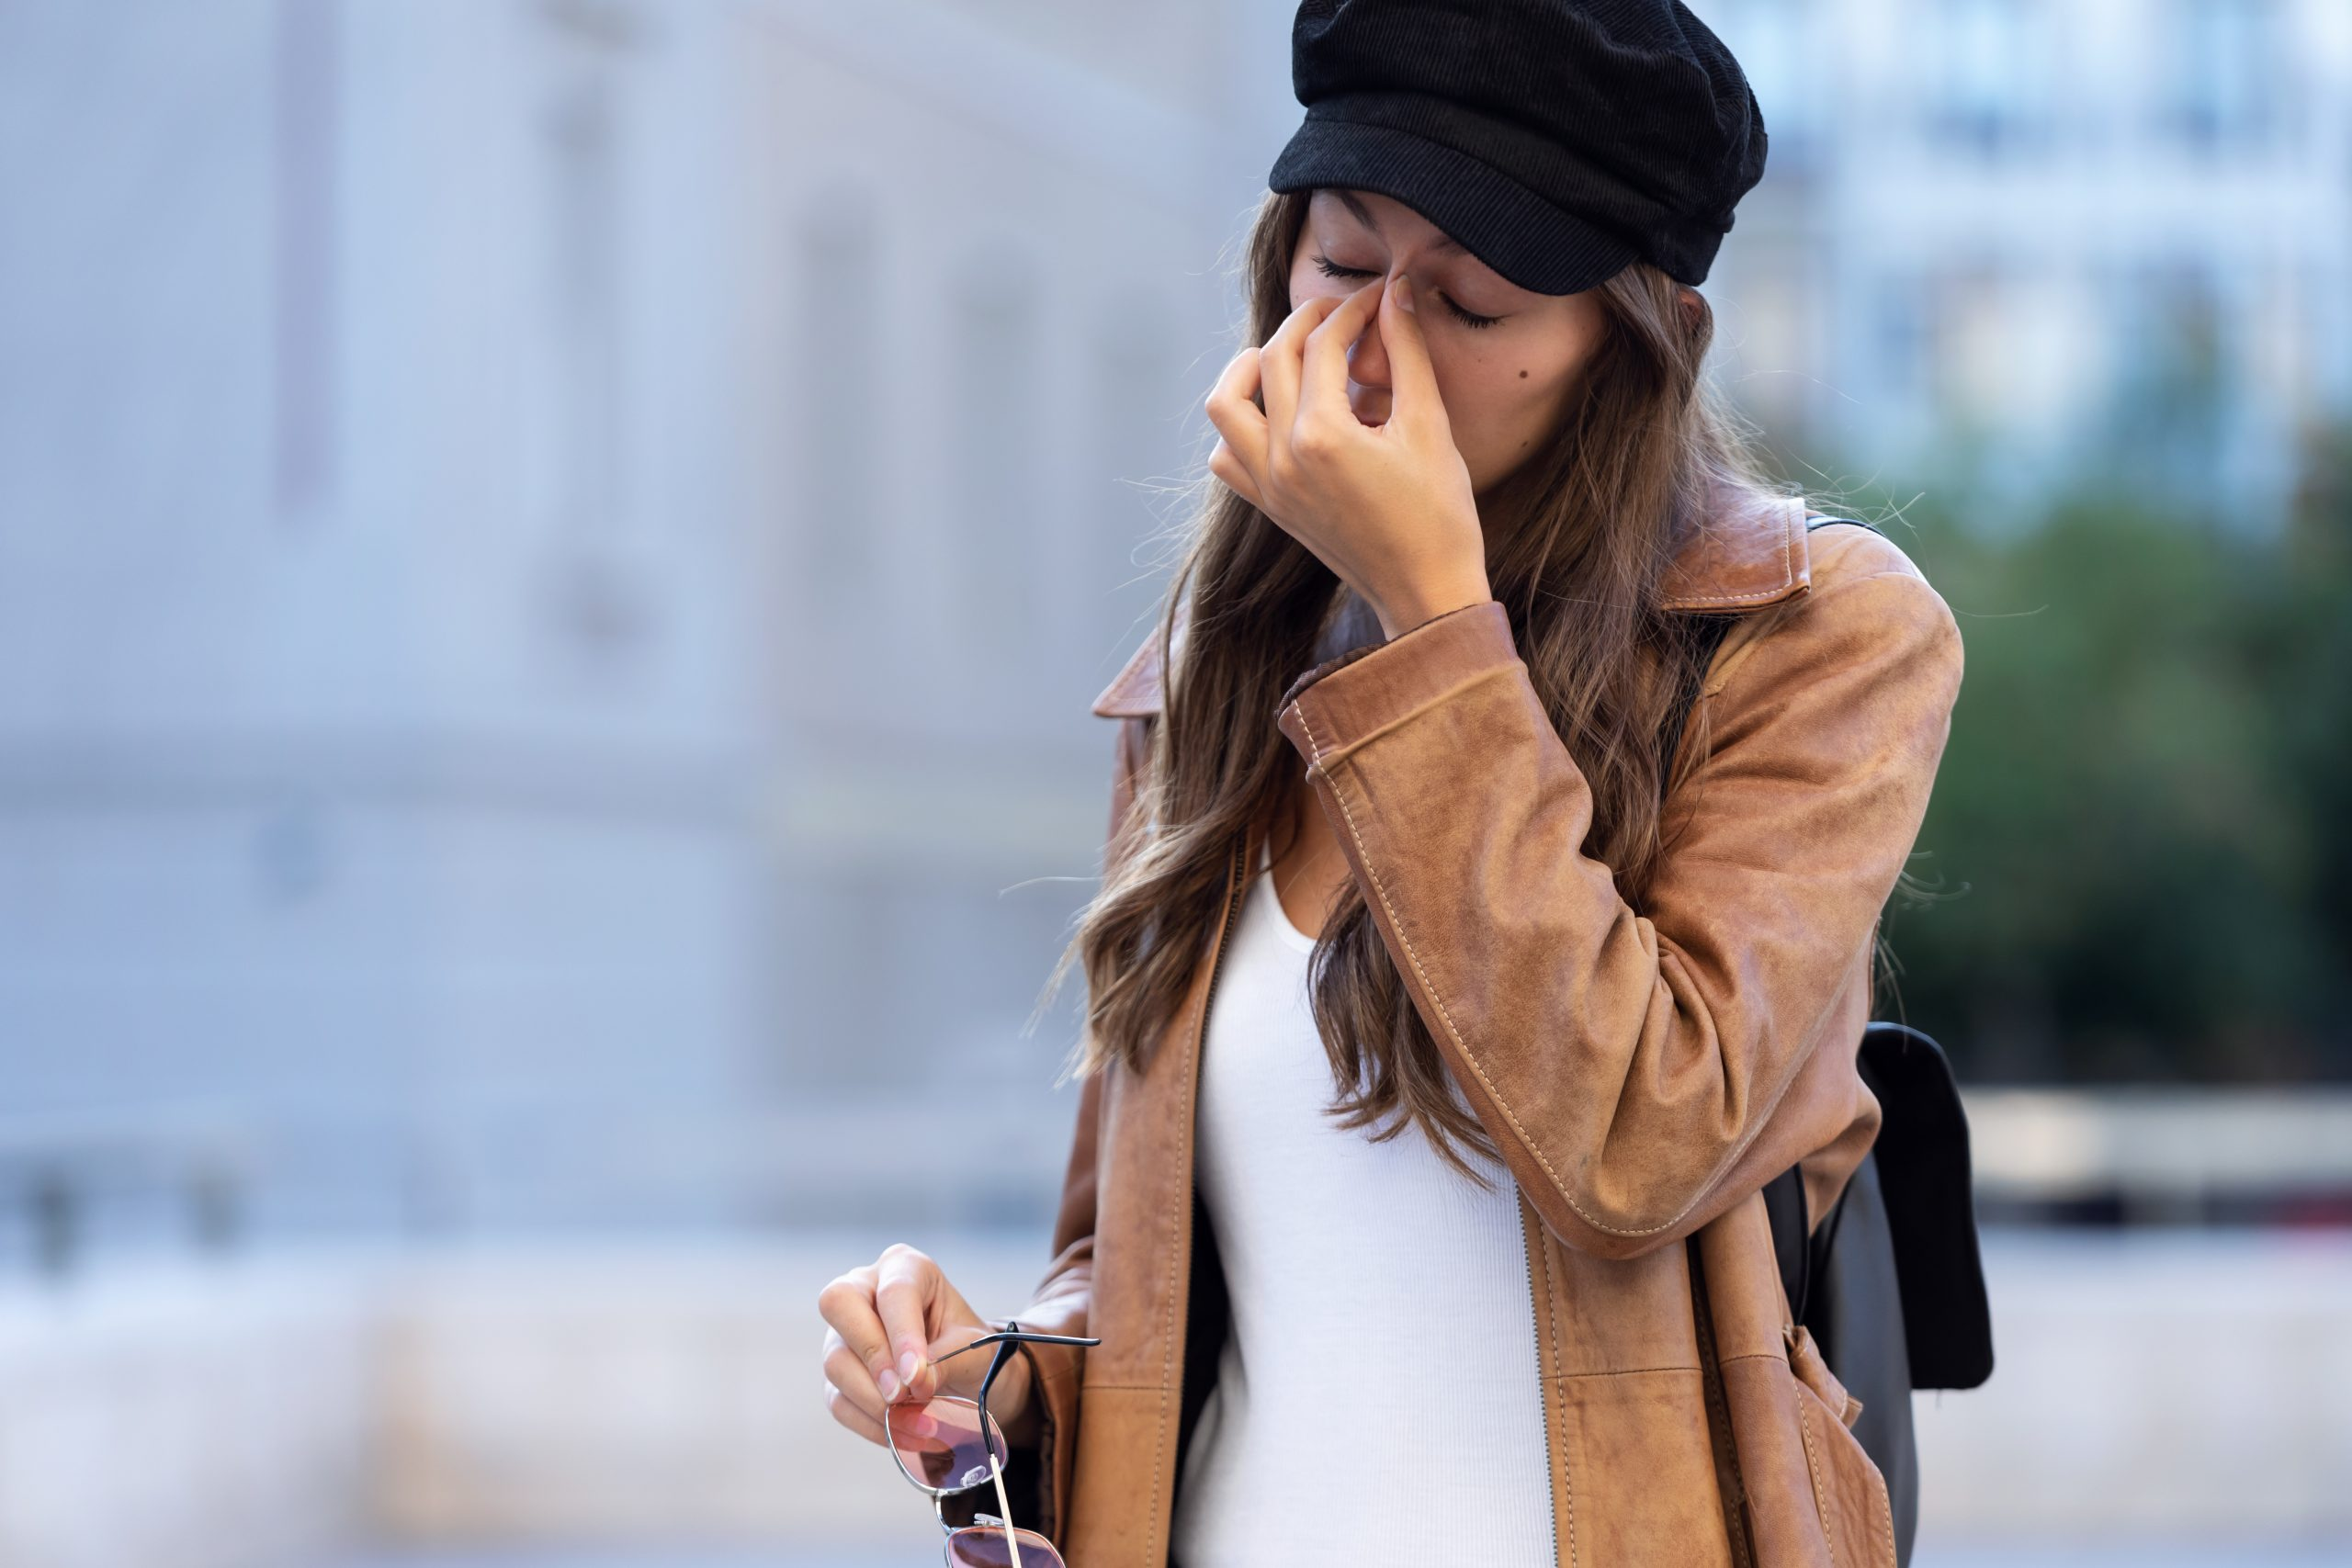 Young woman suffering from female infertility hand on face